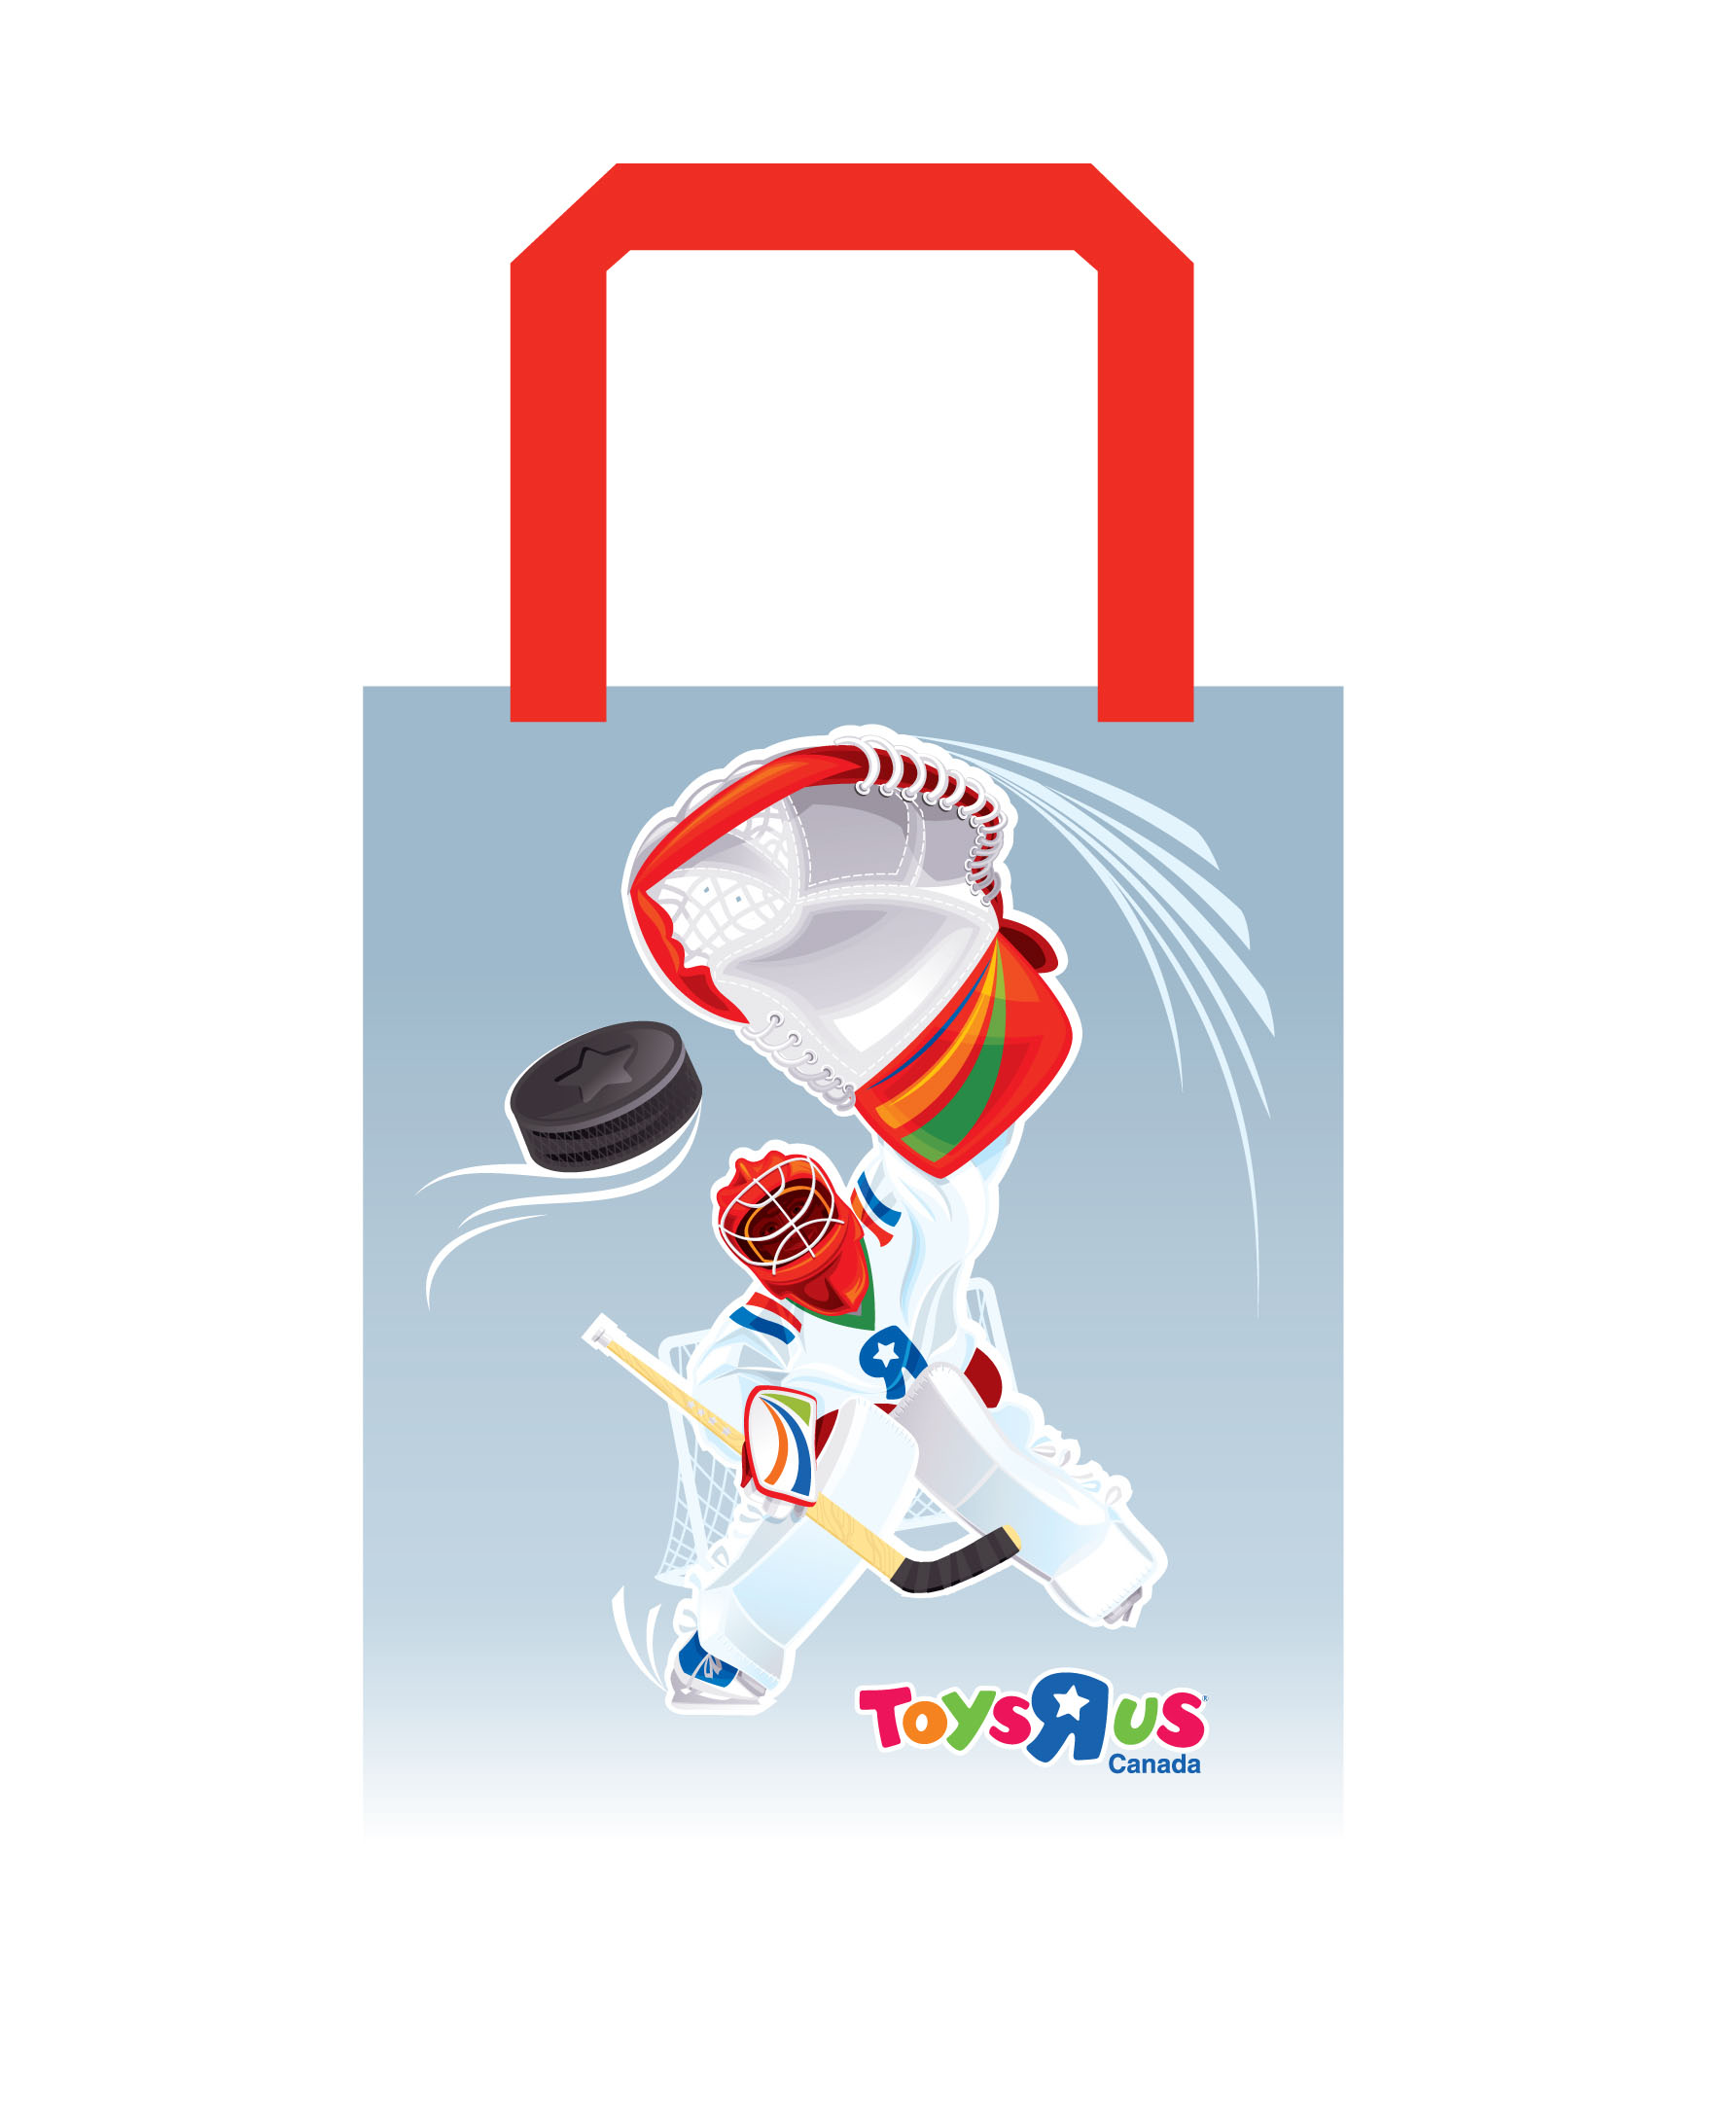 Shopping bags design for Toys'R'Us Canada